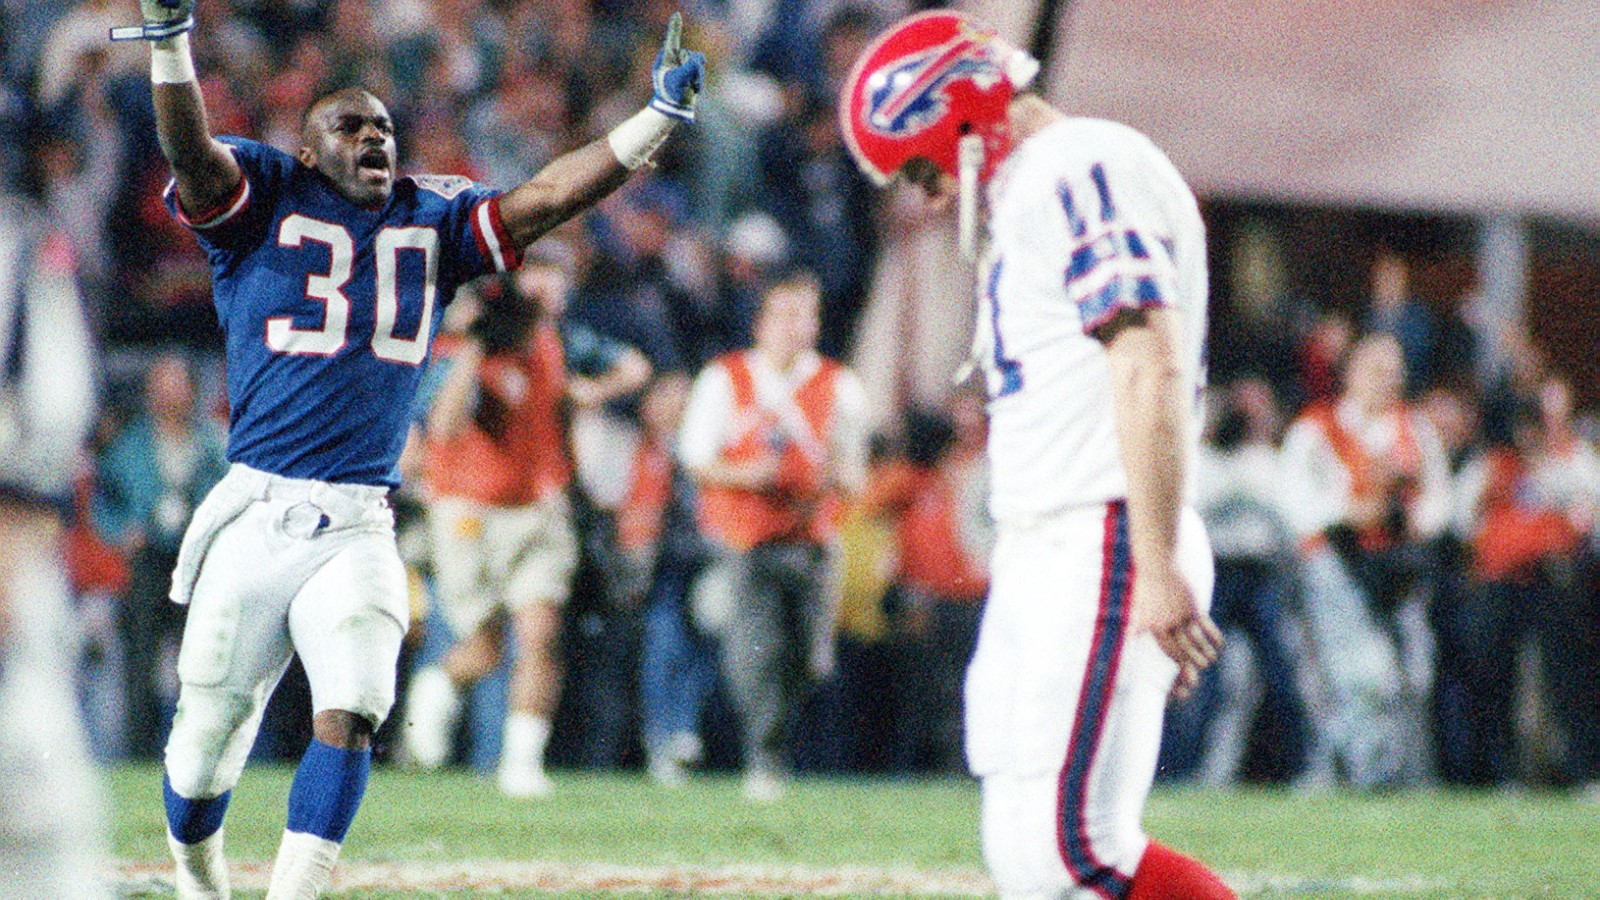 Scott Norwood walks off the field at the end of Super Bowl XXV. (James P. McCoy/Buffalo News file photo)